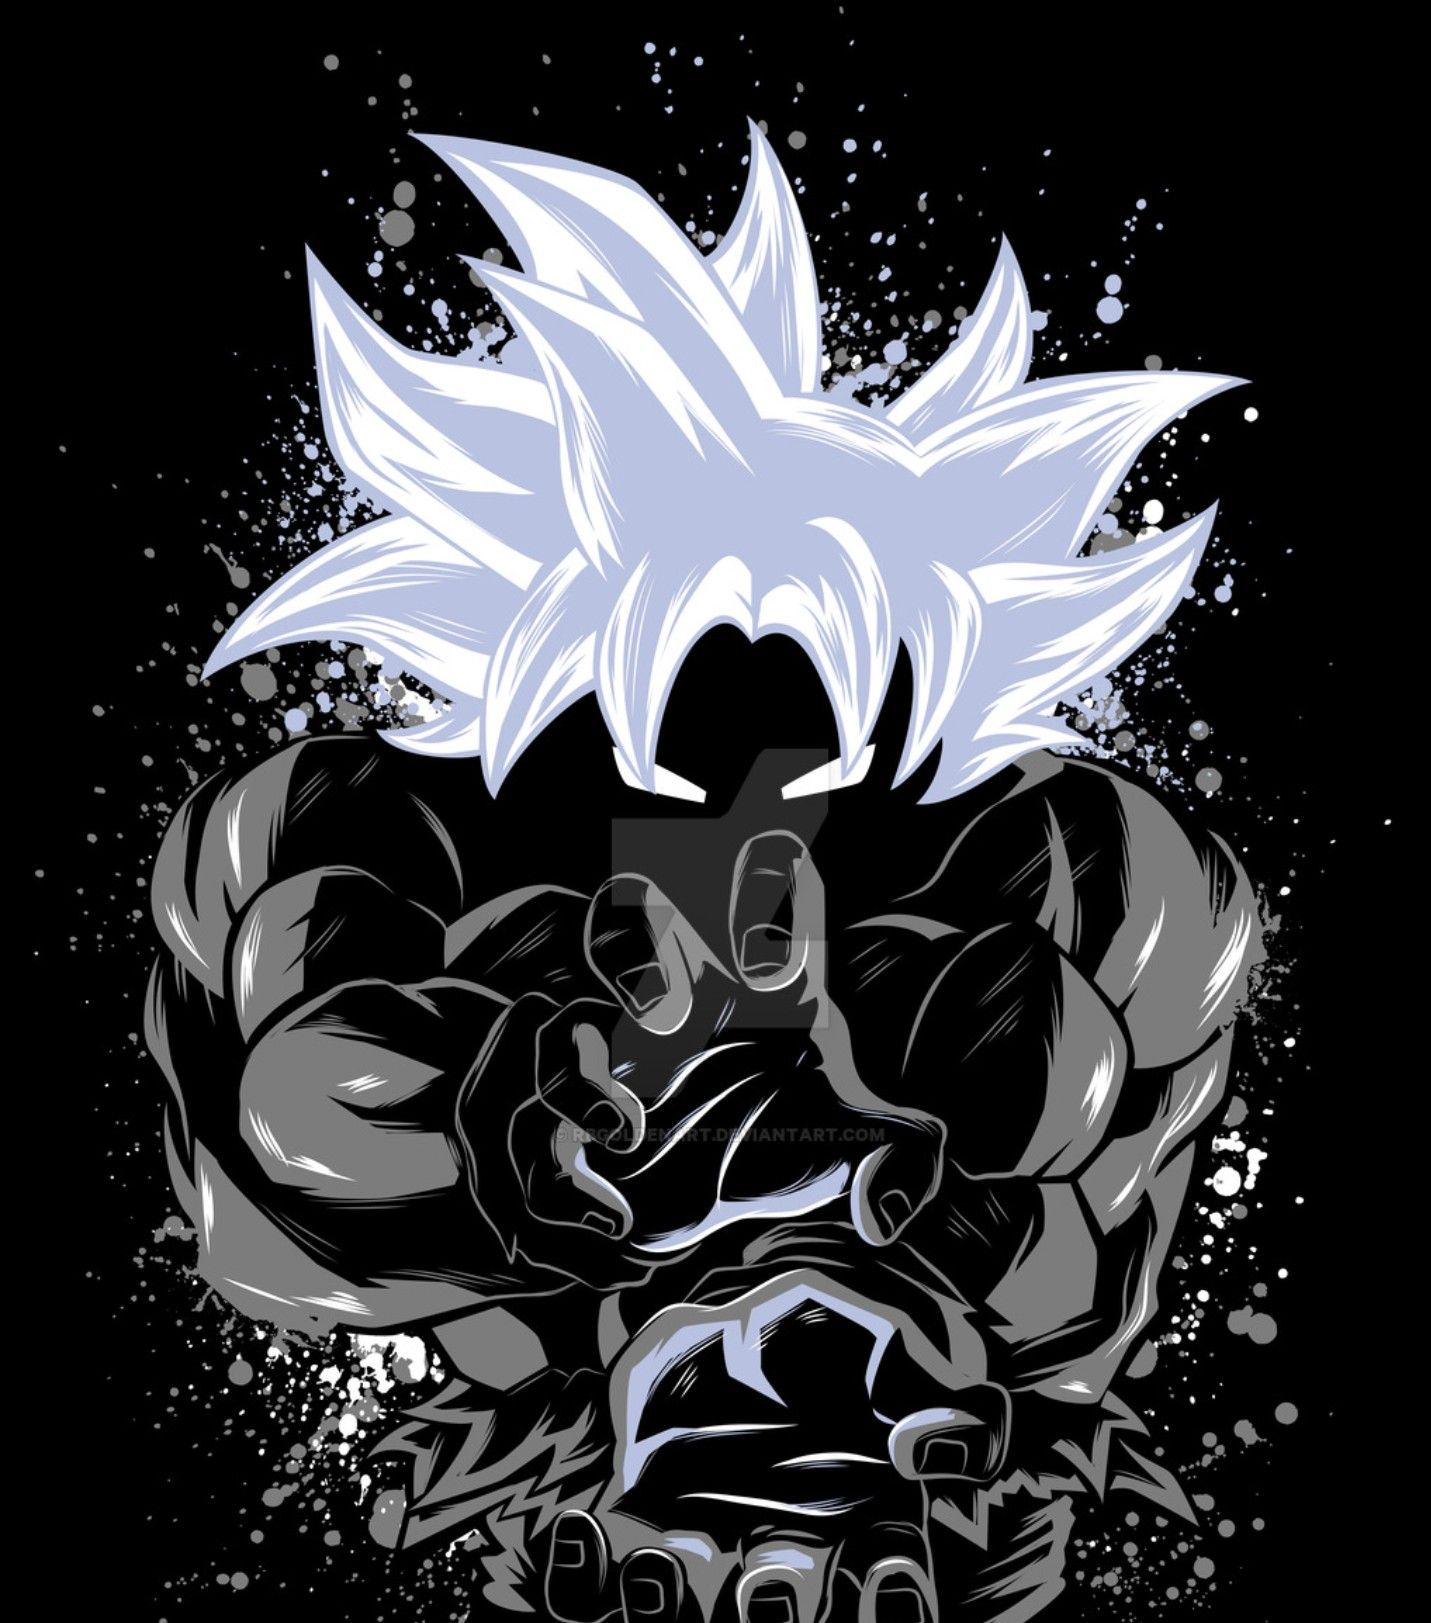 Ultra Instinct Dragon Ball Super Wallpaper: Goku Ultra Instinct, Dragon Ball Super